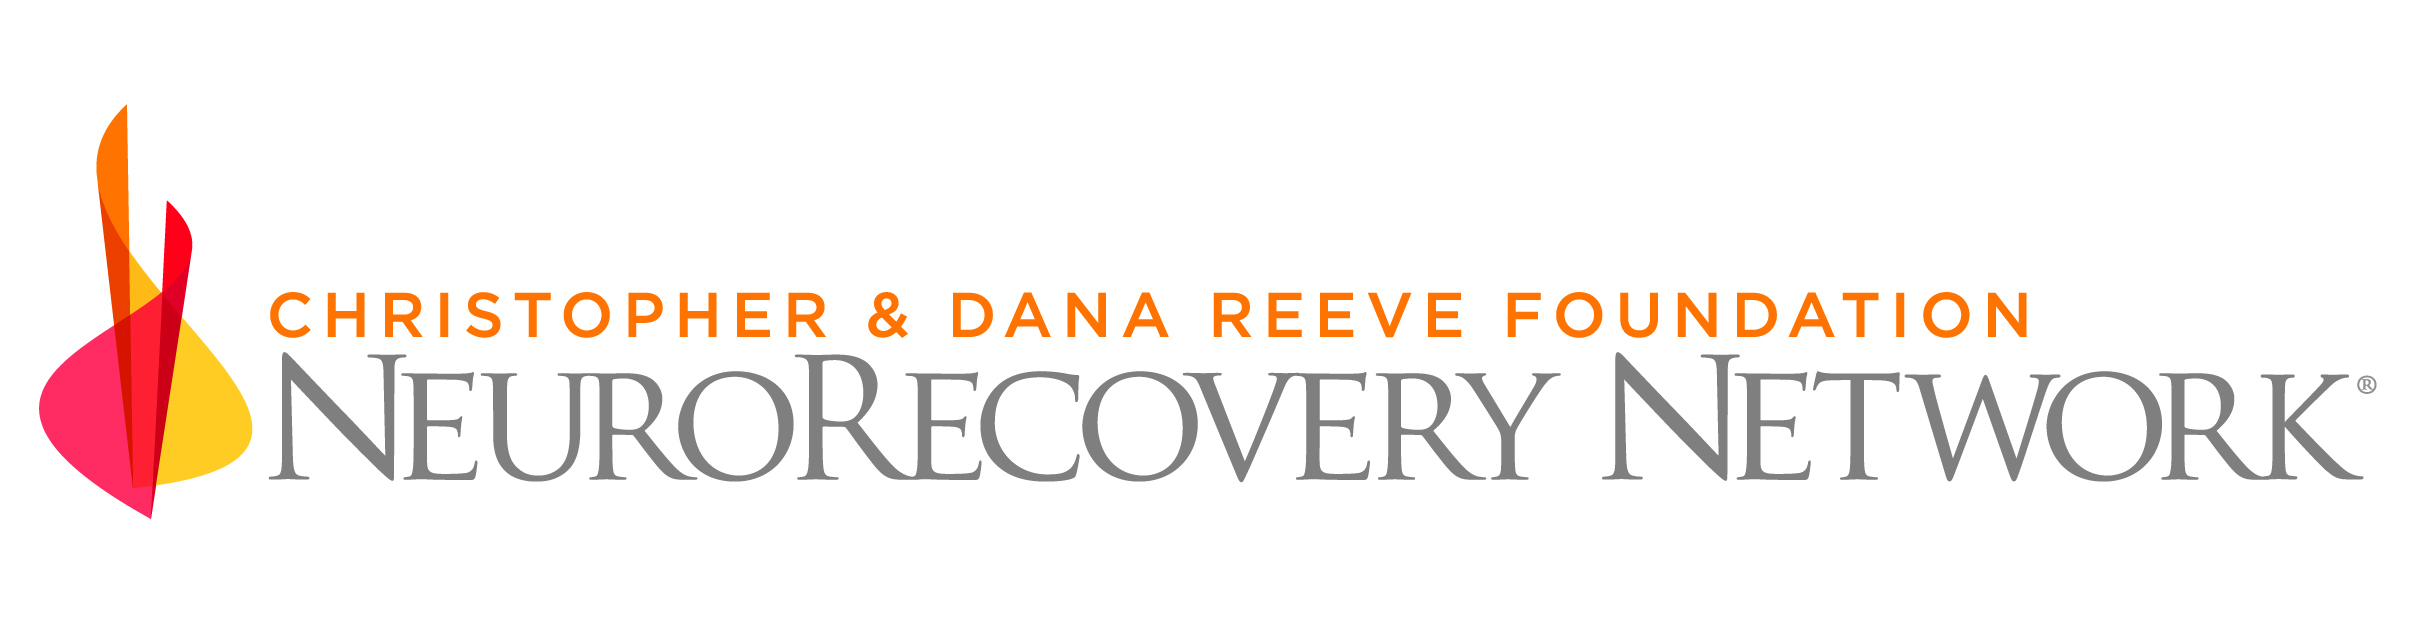 The NeuroRecovery Network